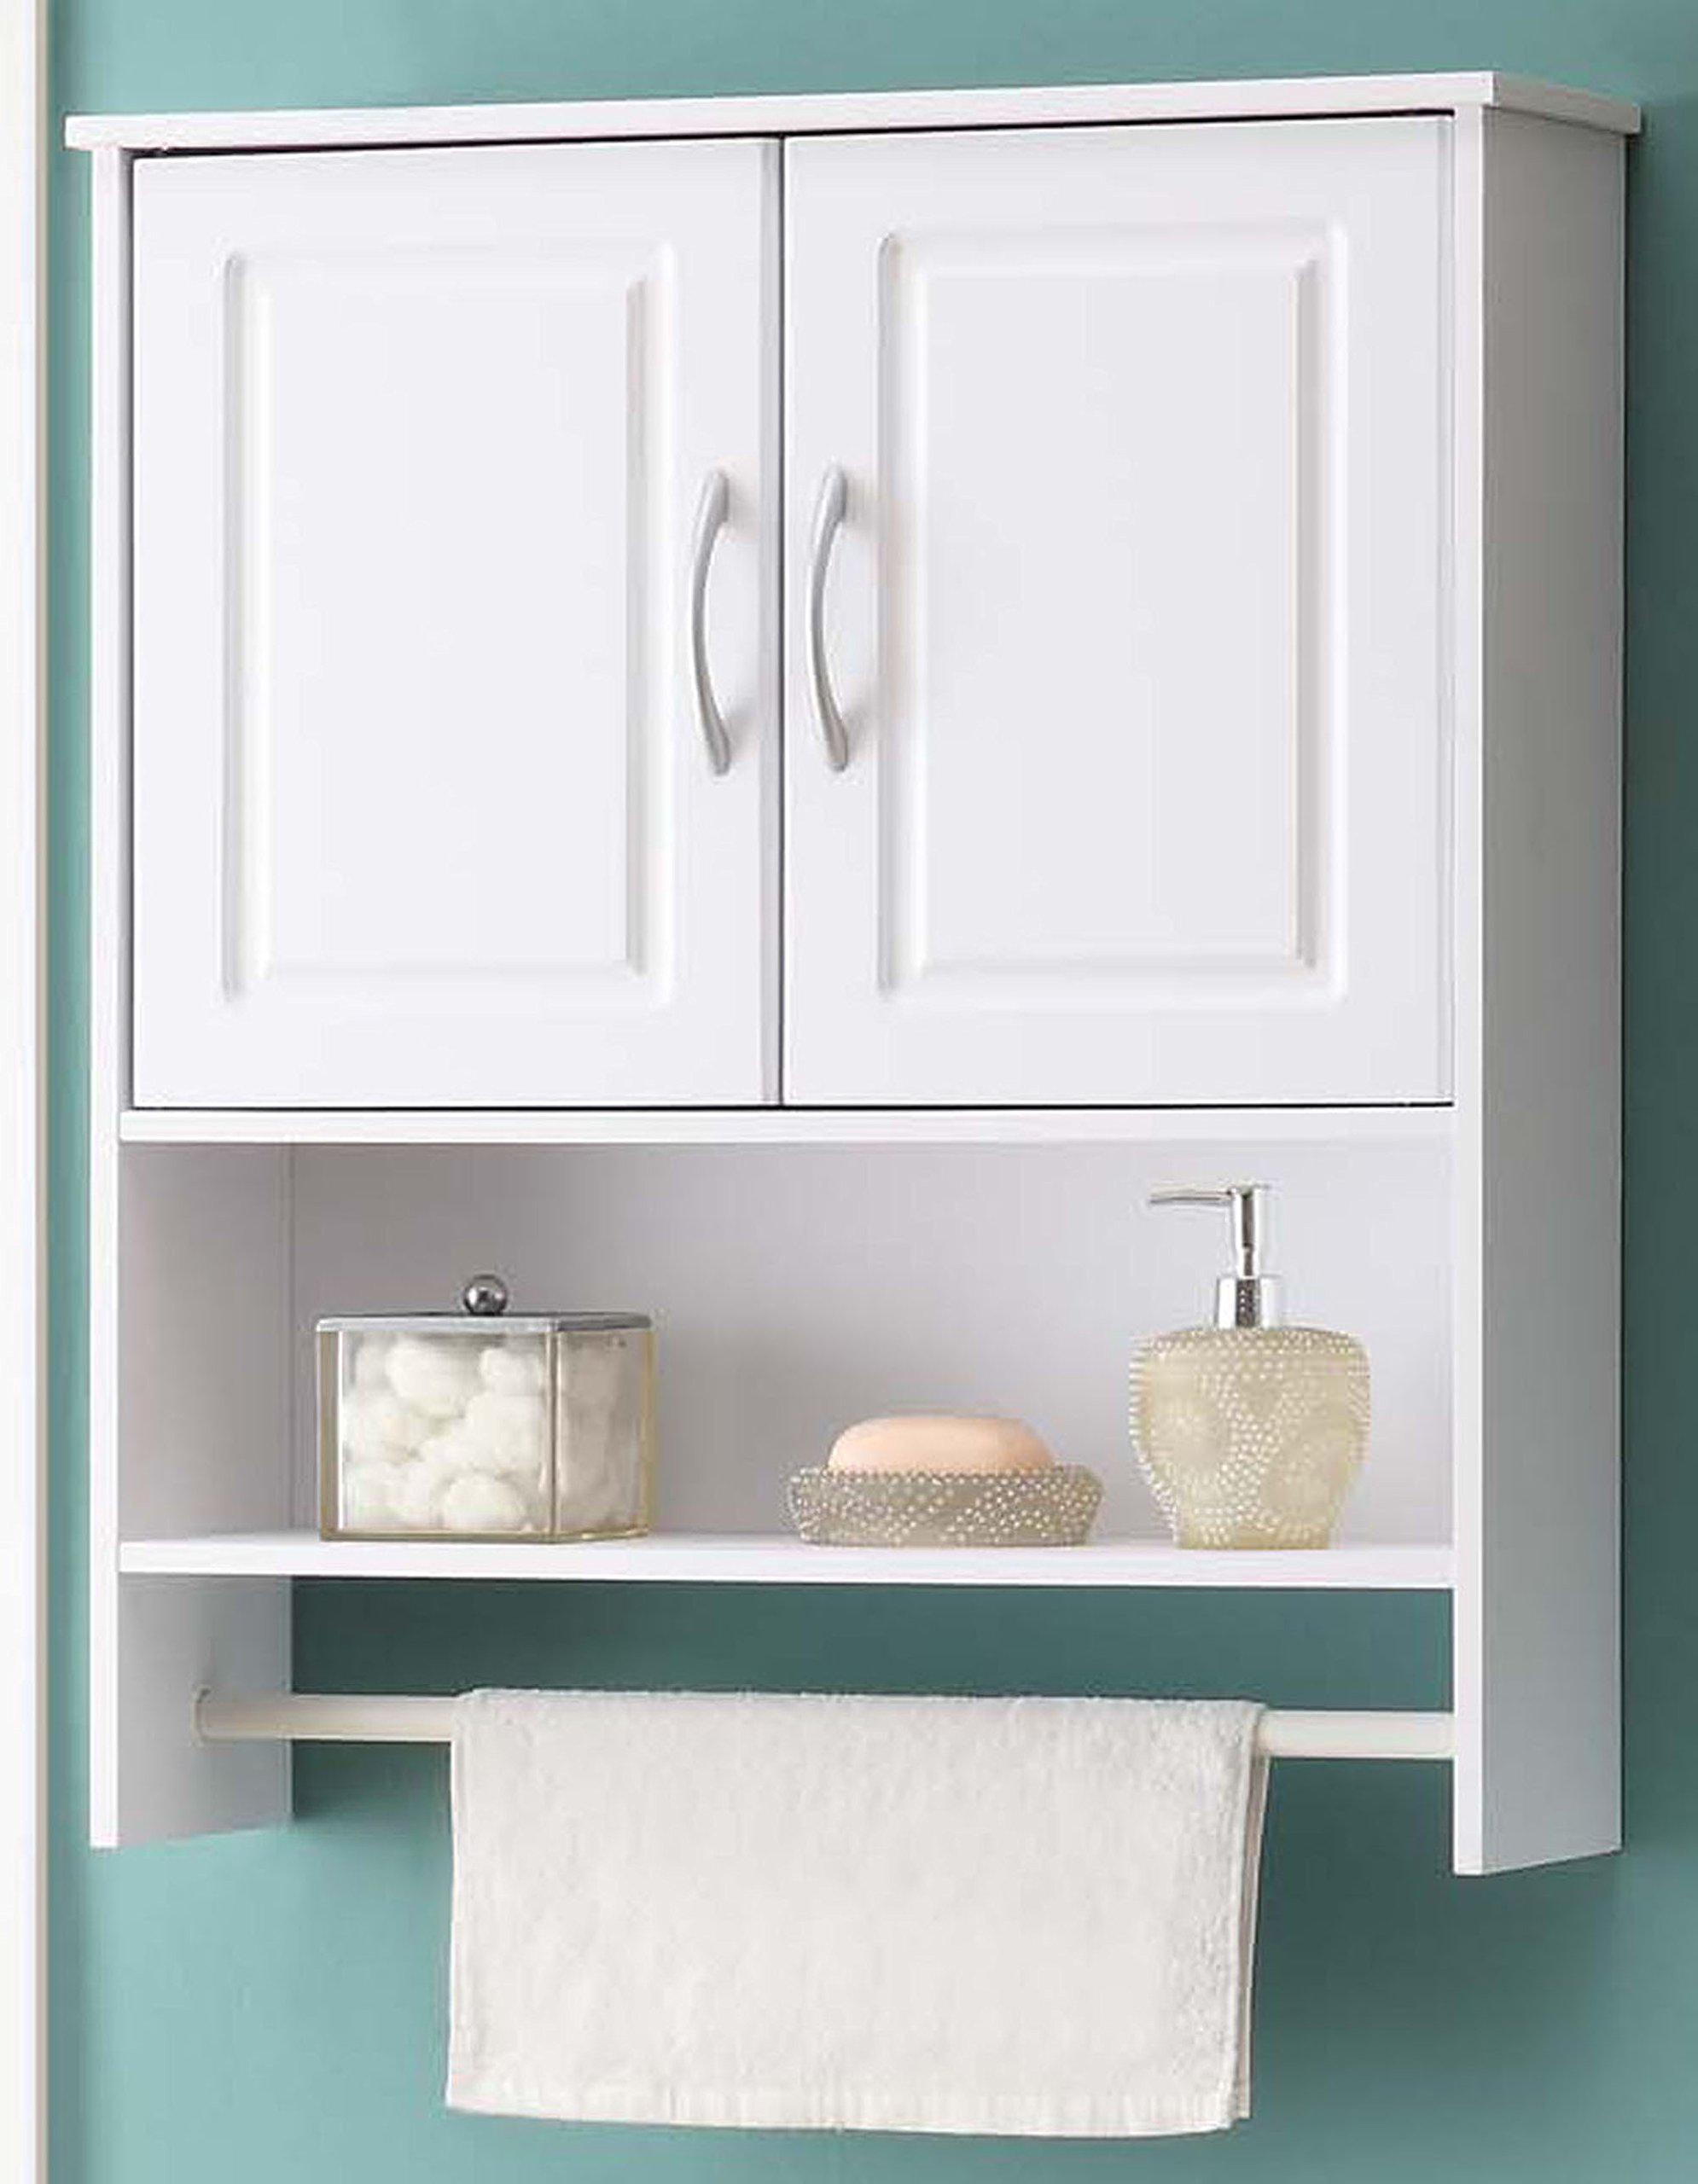 4D Concepts Bathroom 2 Door Wall Cabinet, White by 4D Concepts